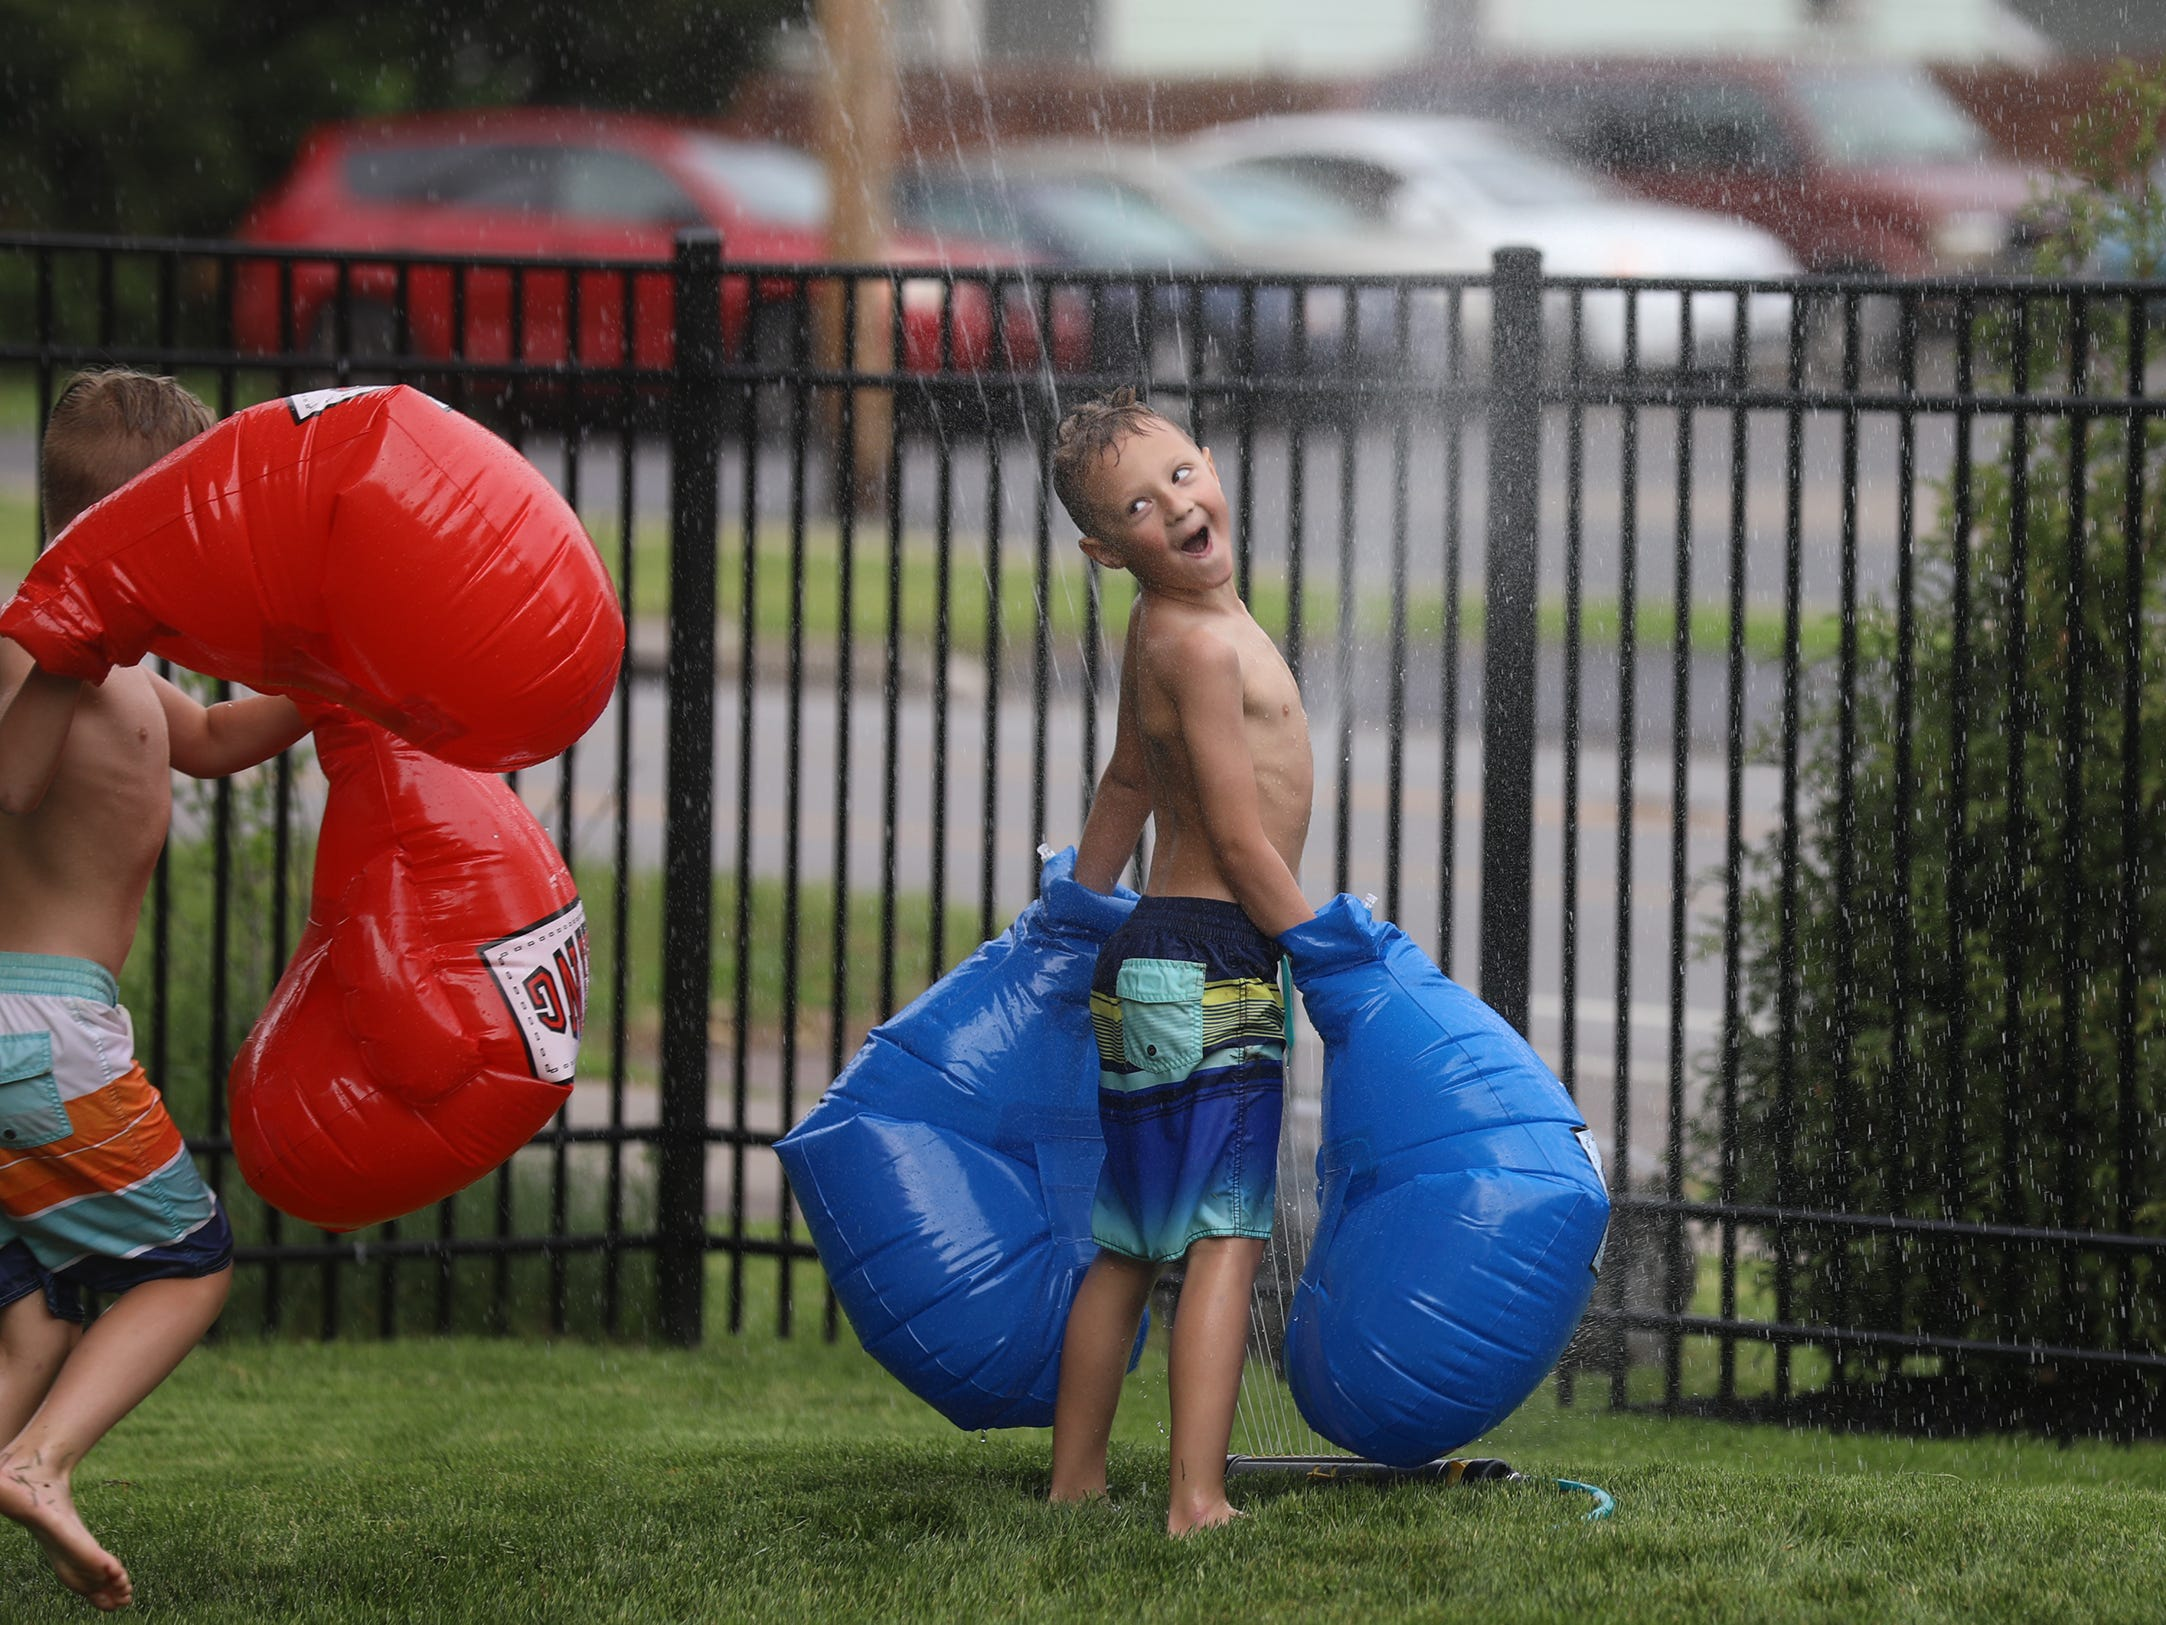 Levi René, 6, cools off in the sprinkler and reacts as his brother, Finn, 8,  comes running at him to continue their inflatable boxing game. The brothers were playing in their yard on St. Paul Boulevard, Irondequoit N.Y. on this warm humid afternoon of May 26, 2018.